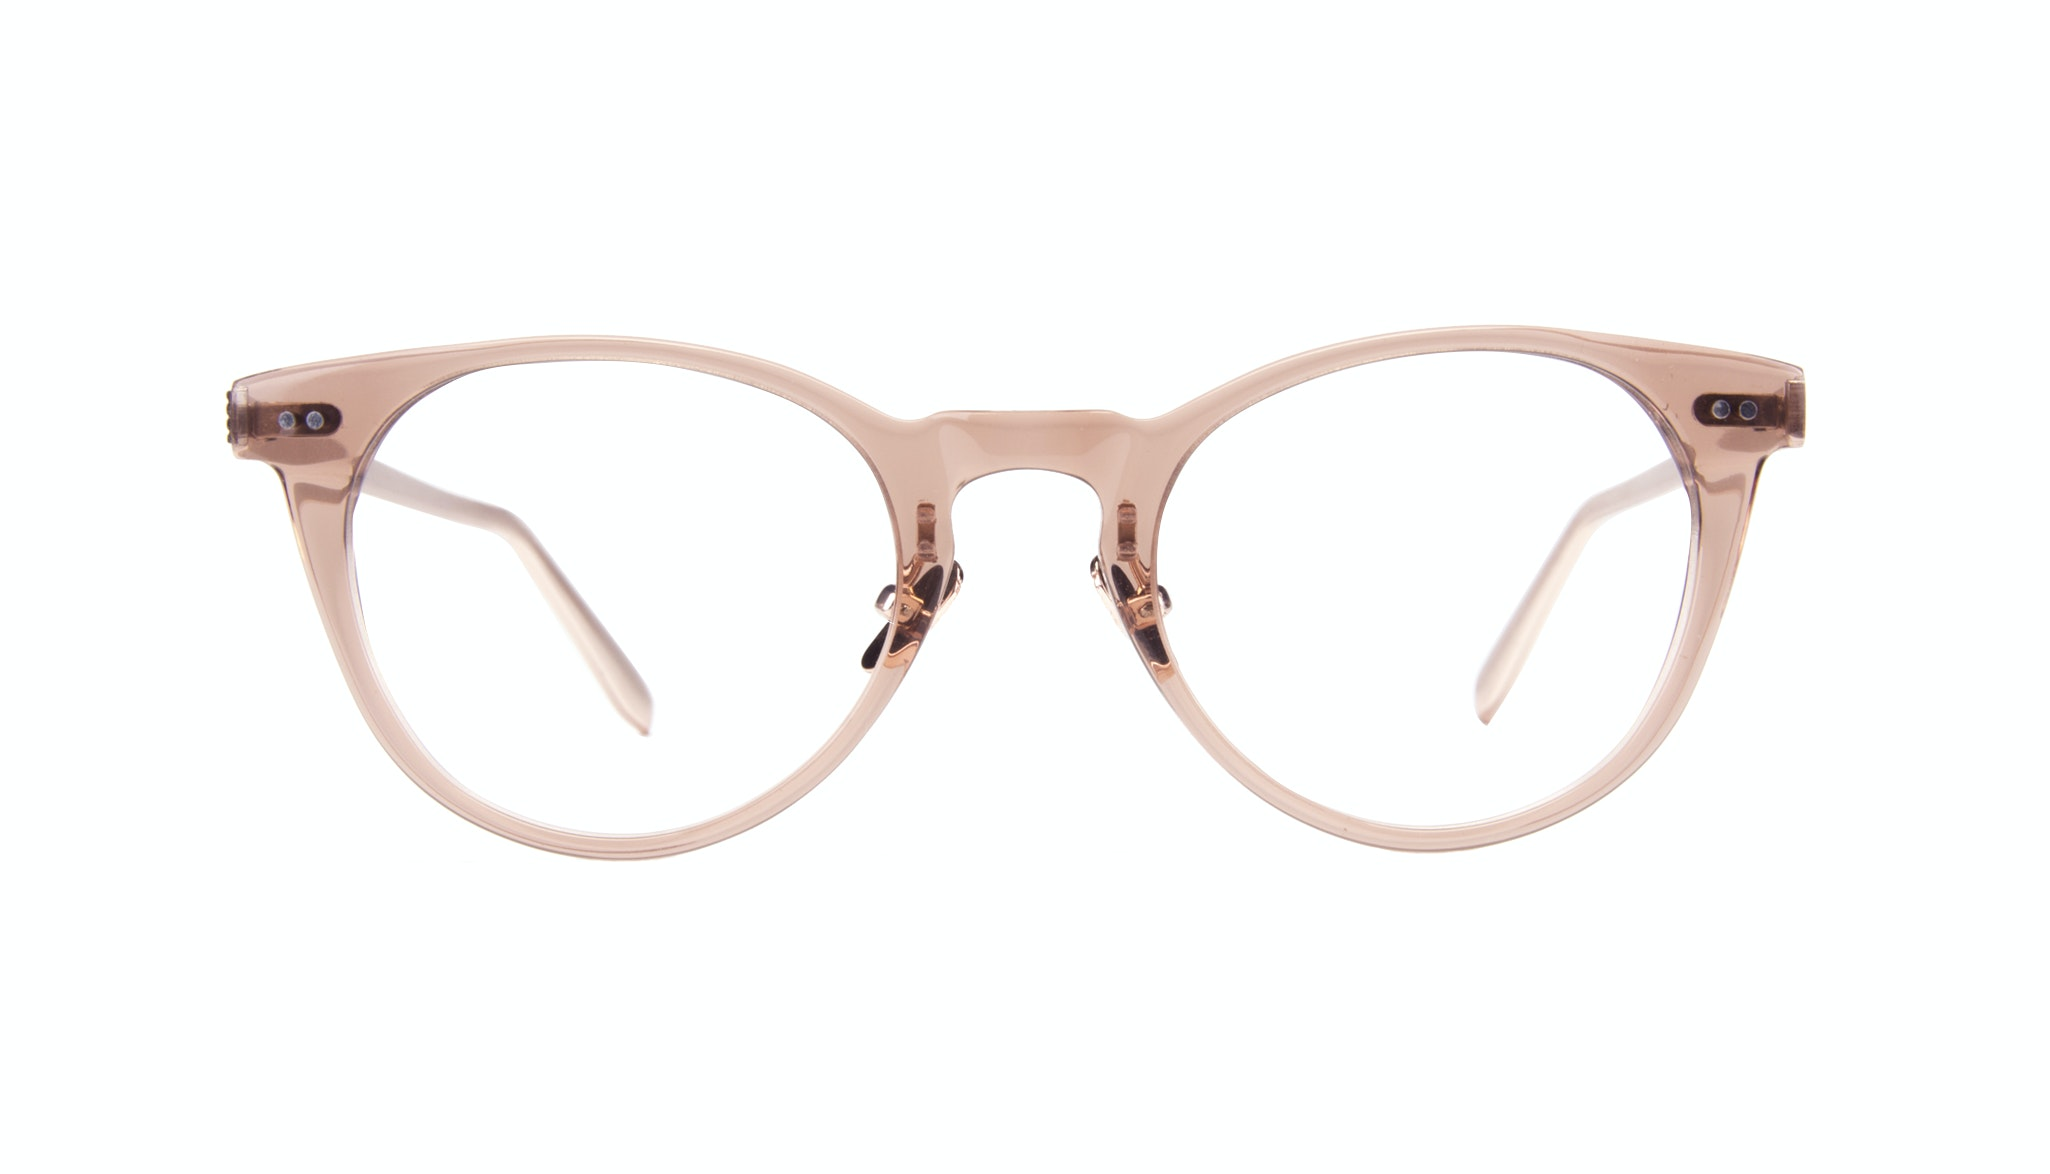 Affordable Fashion Glasses Round Eyeglasses Women Luv Rose Front